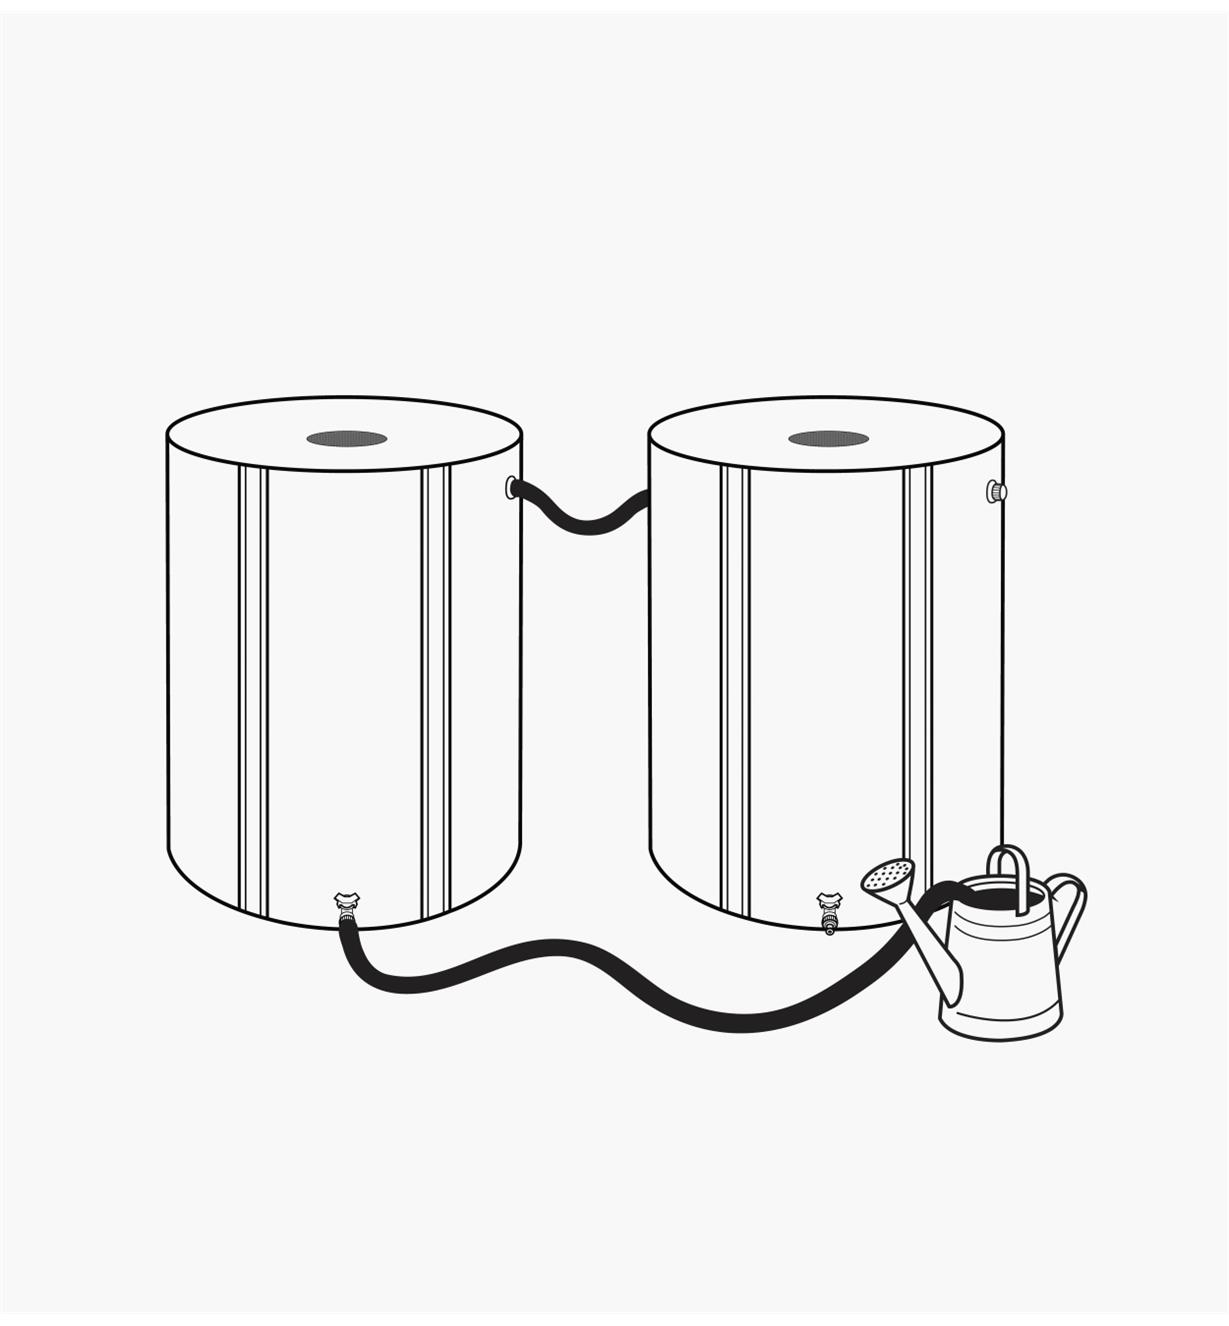 Illustration of two rain barrels connected by a leader hose